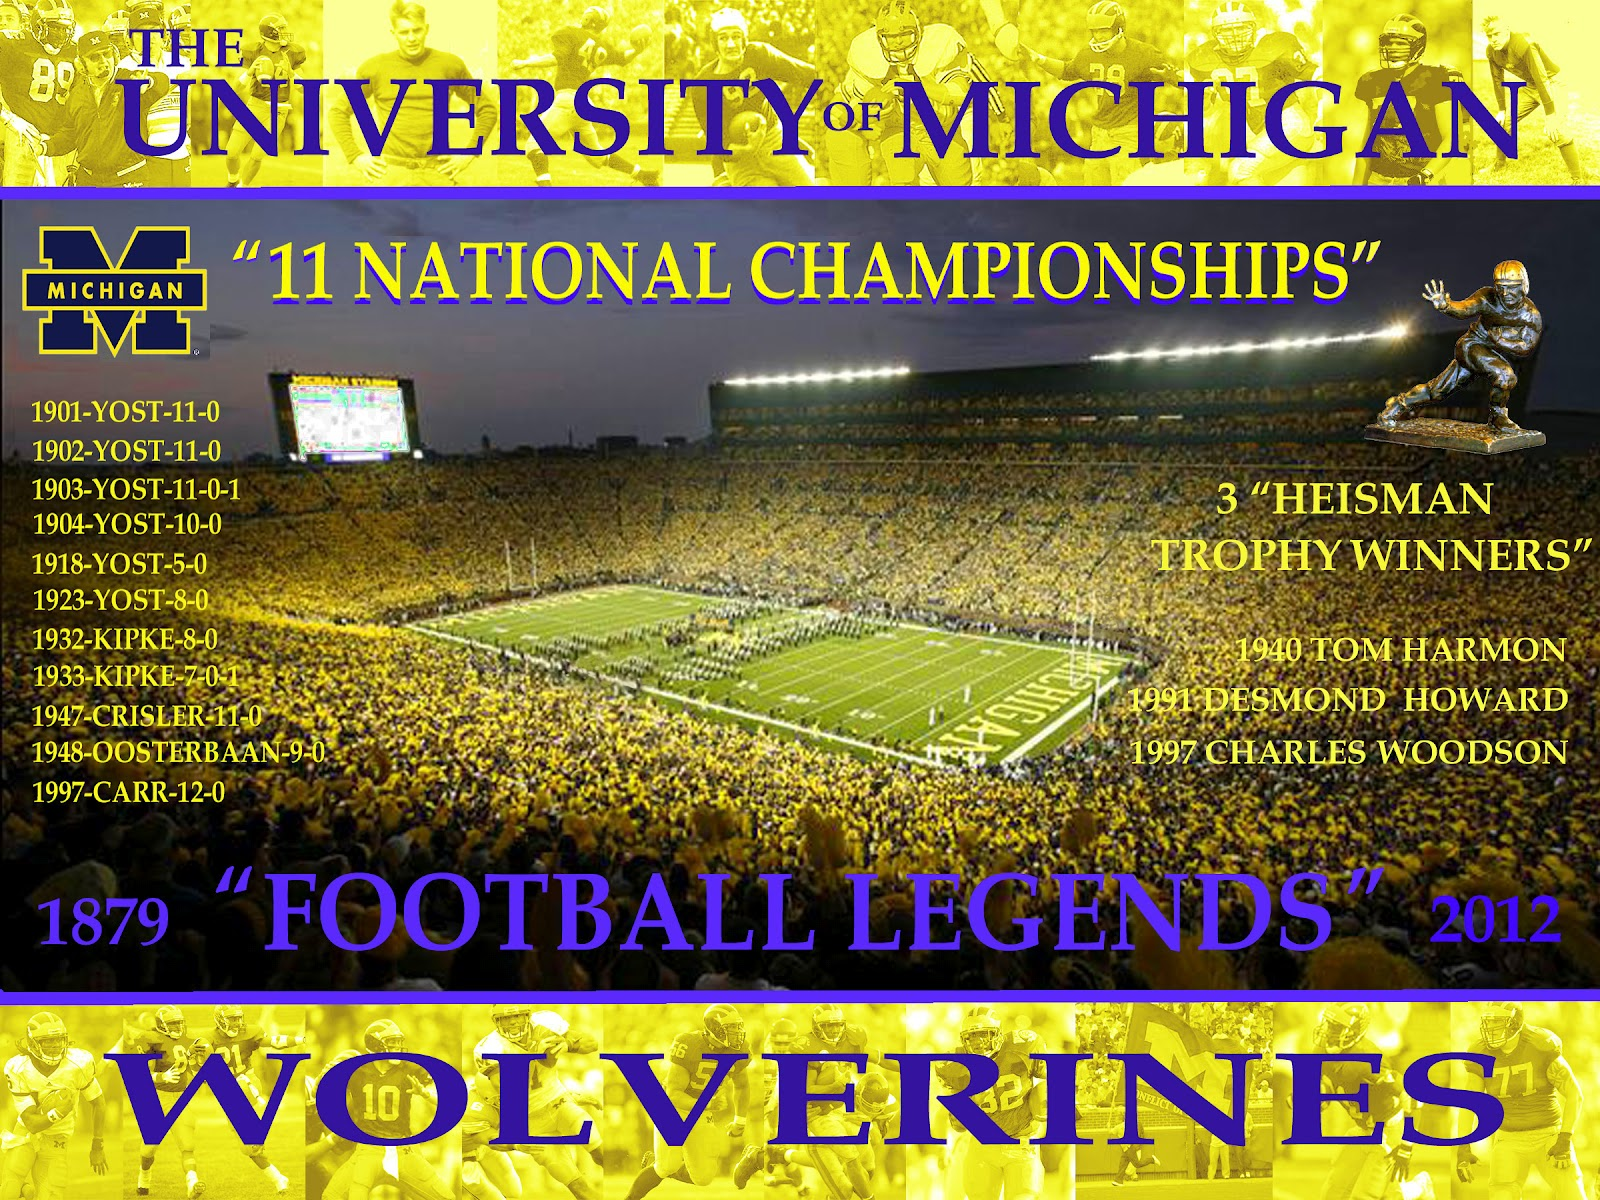 michigan wolverines wallpaper   wwwhigh definition wallpapercom 1600x1200